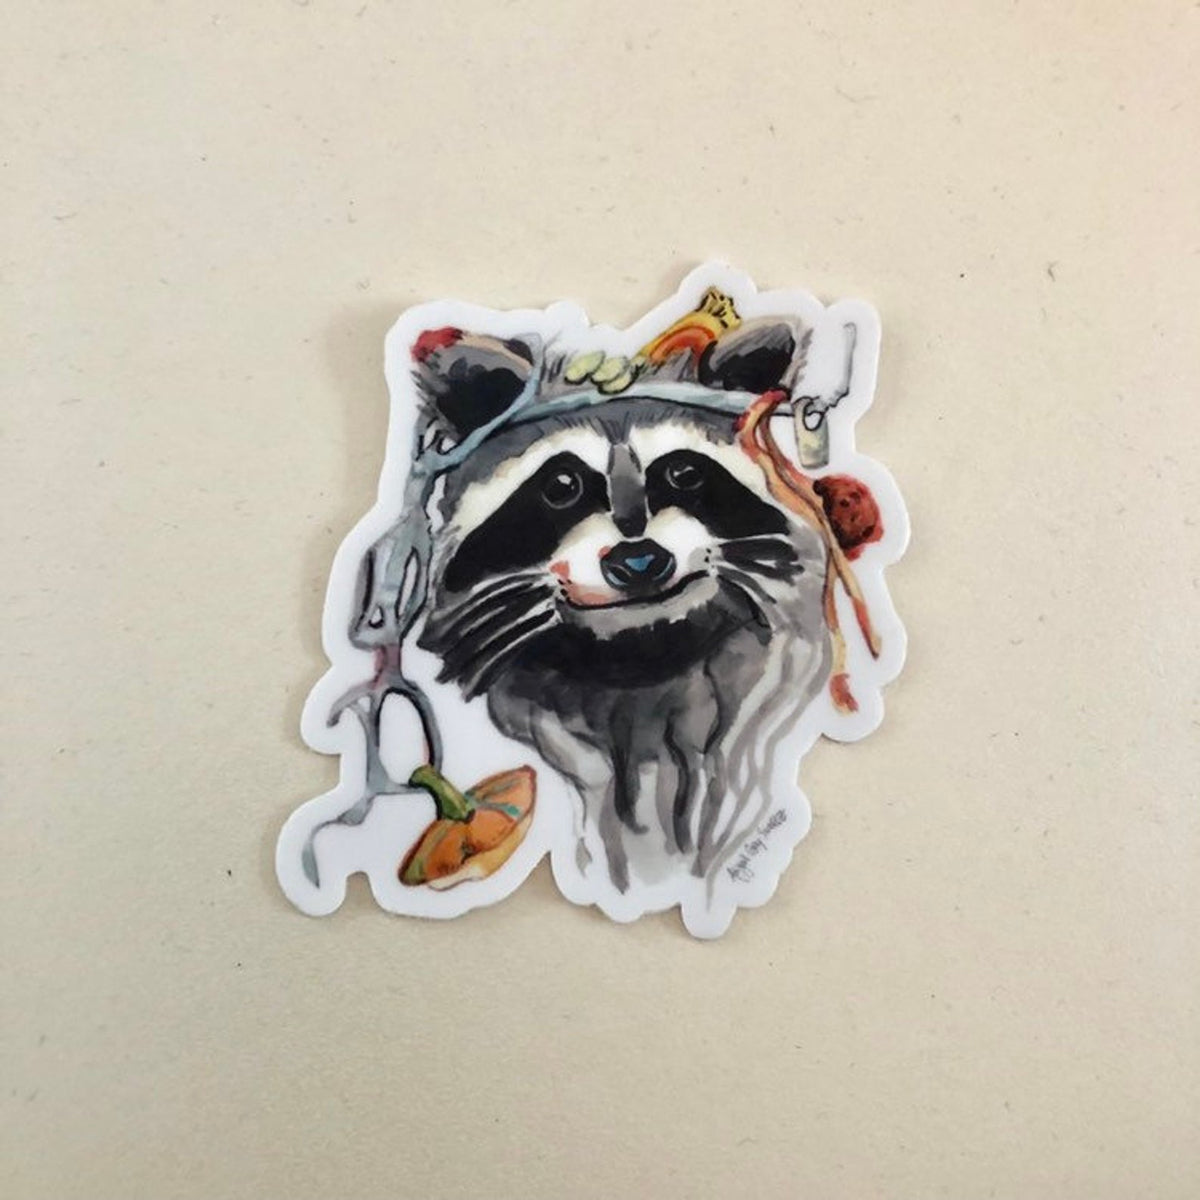 Dumpster Diver sticker of raccoon face by GrayDayStudio